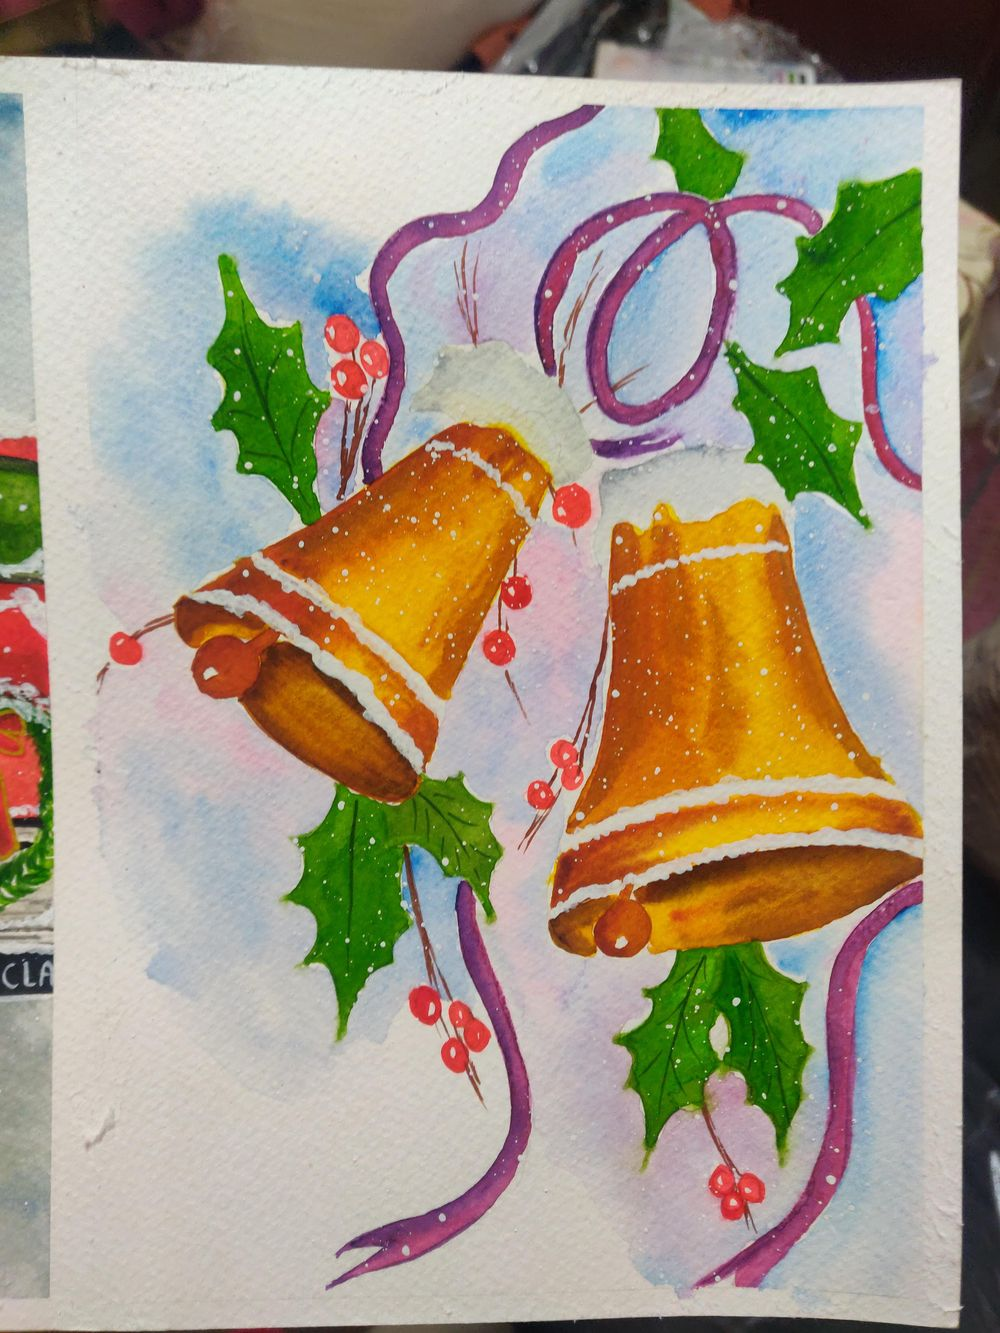 Countdown to Christmas - image 2 - student project